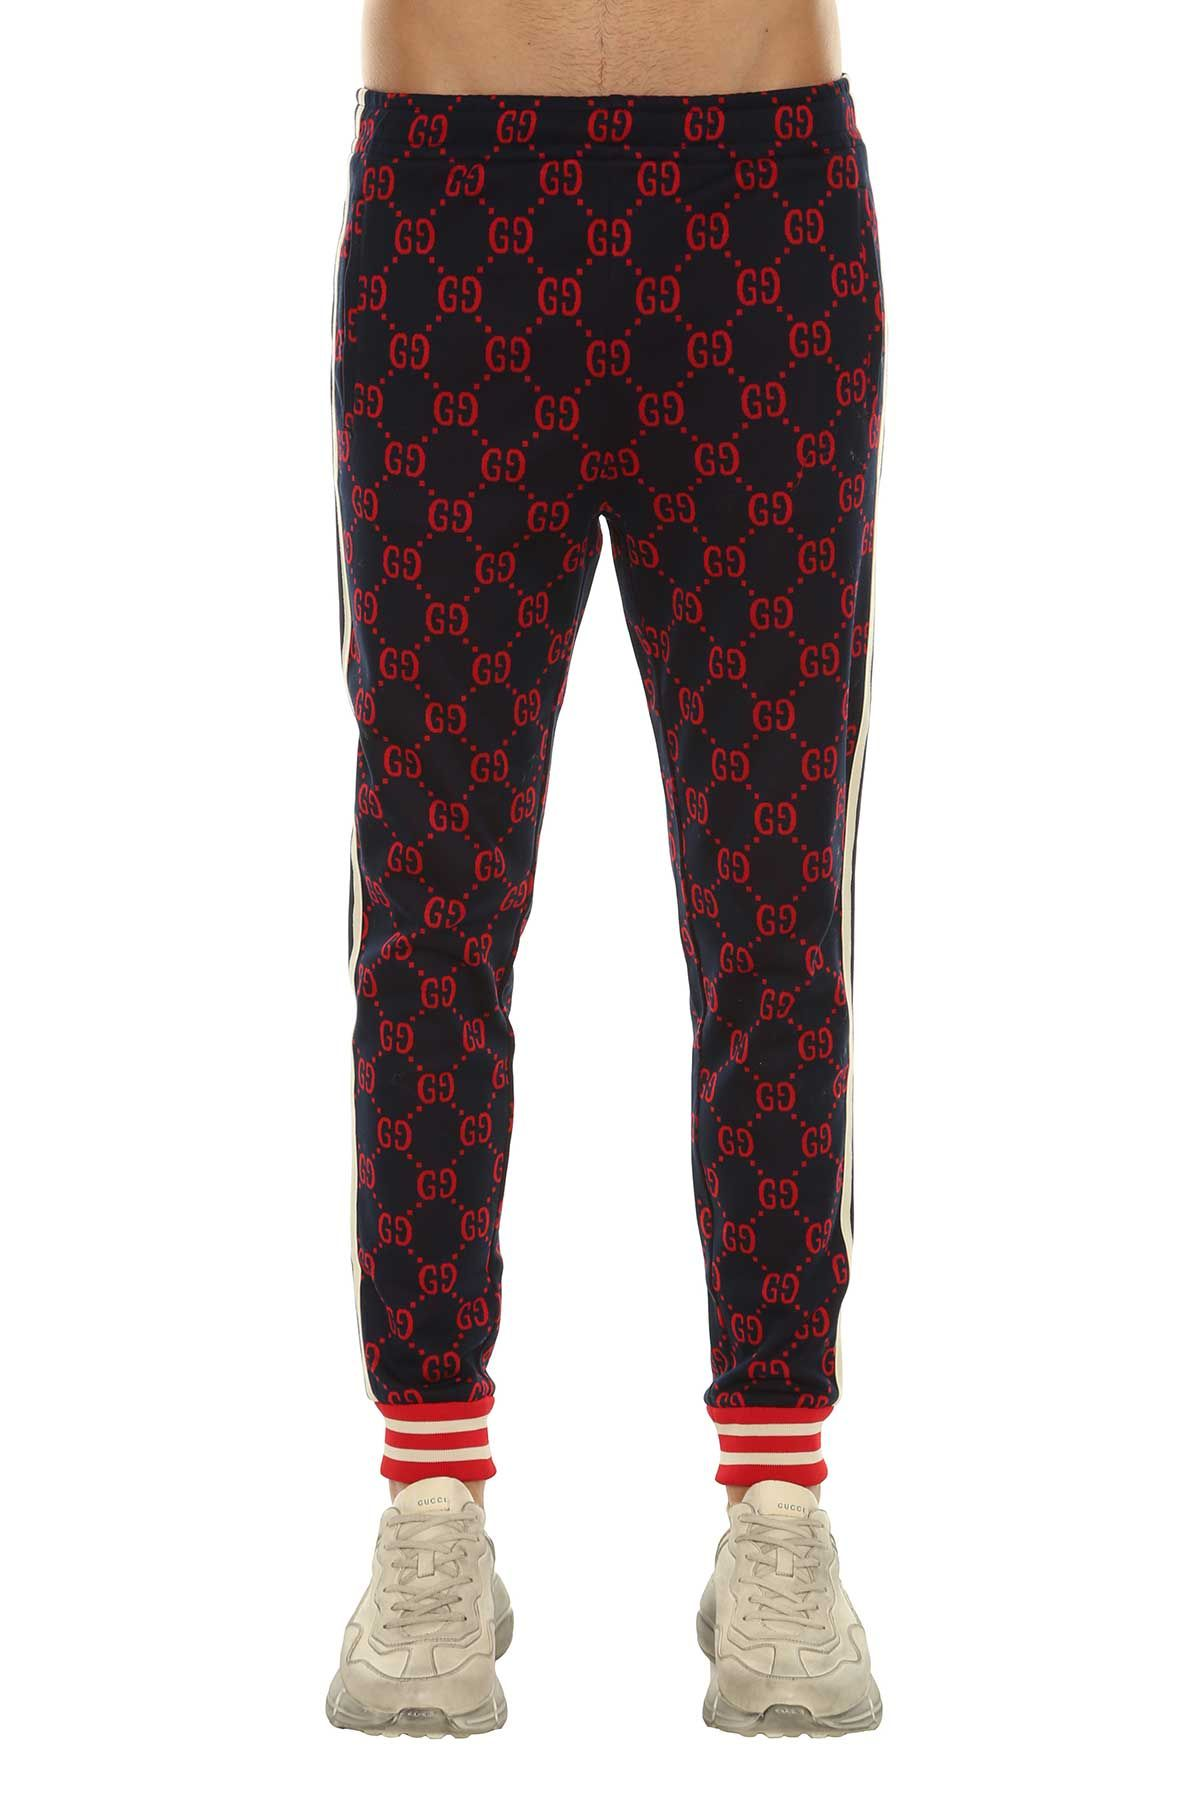 bdf805b4b3d GUCCI GG JACQUARD PANTS.  gucci  cloth